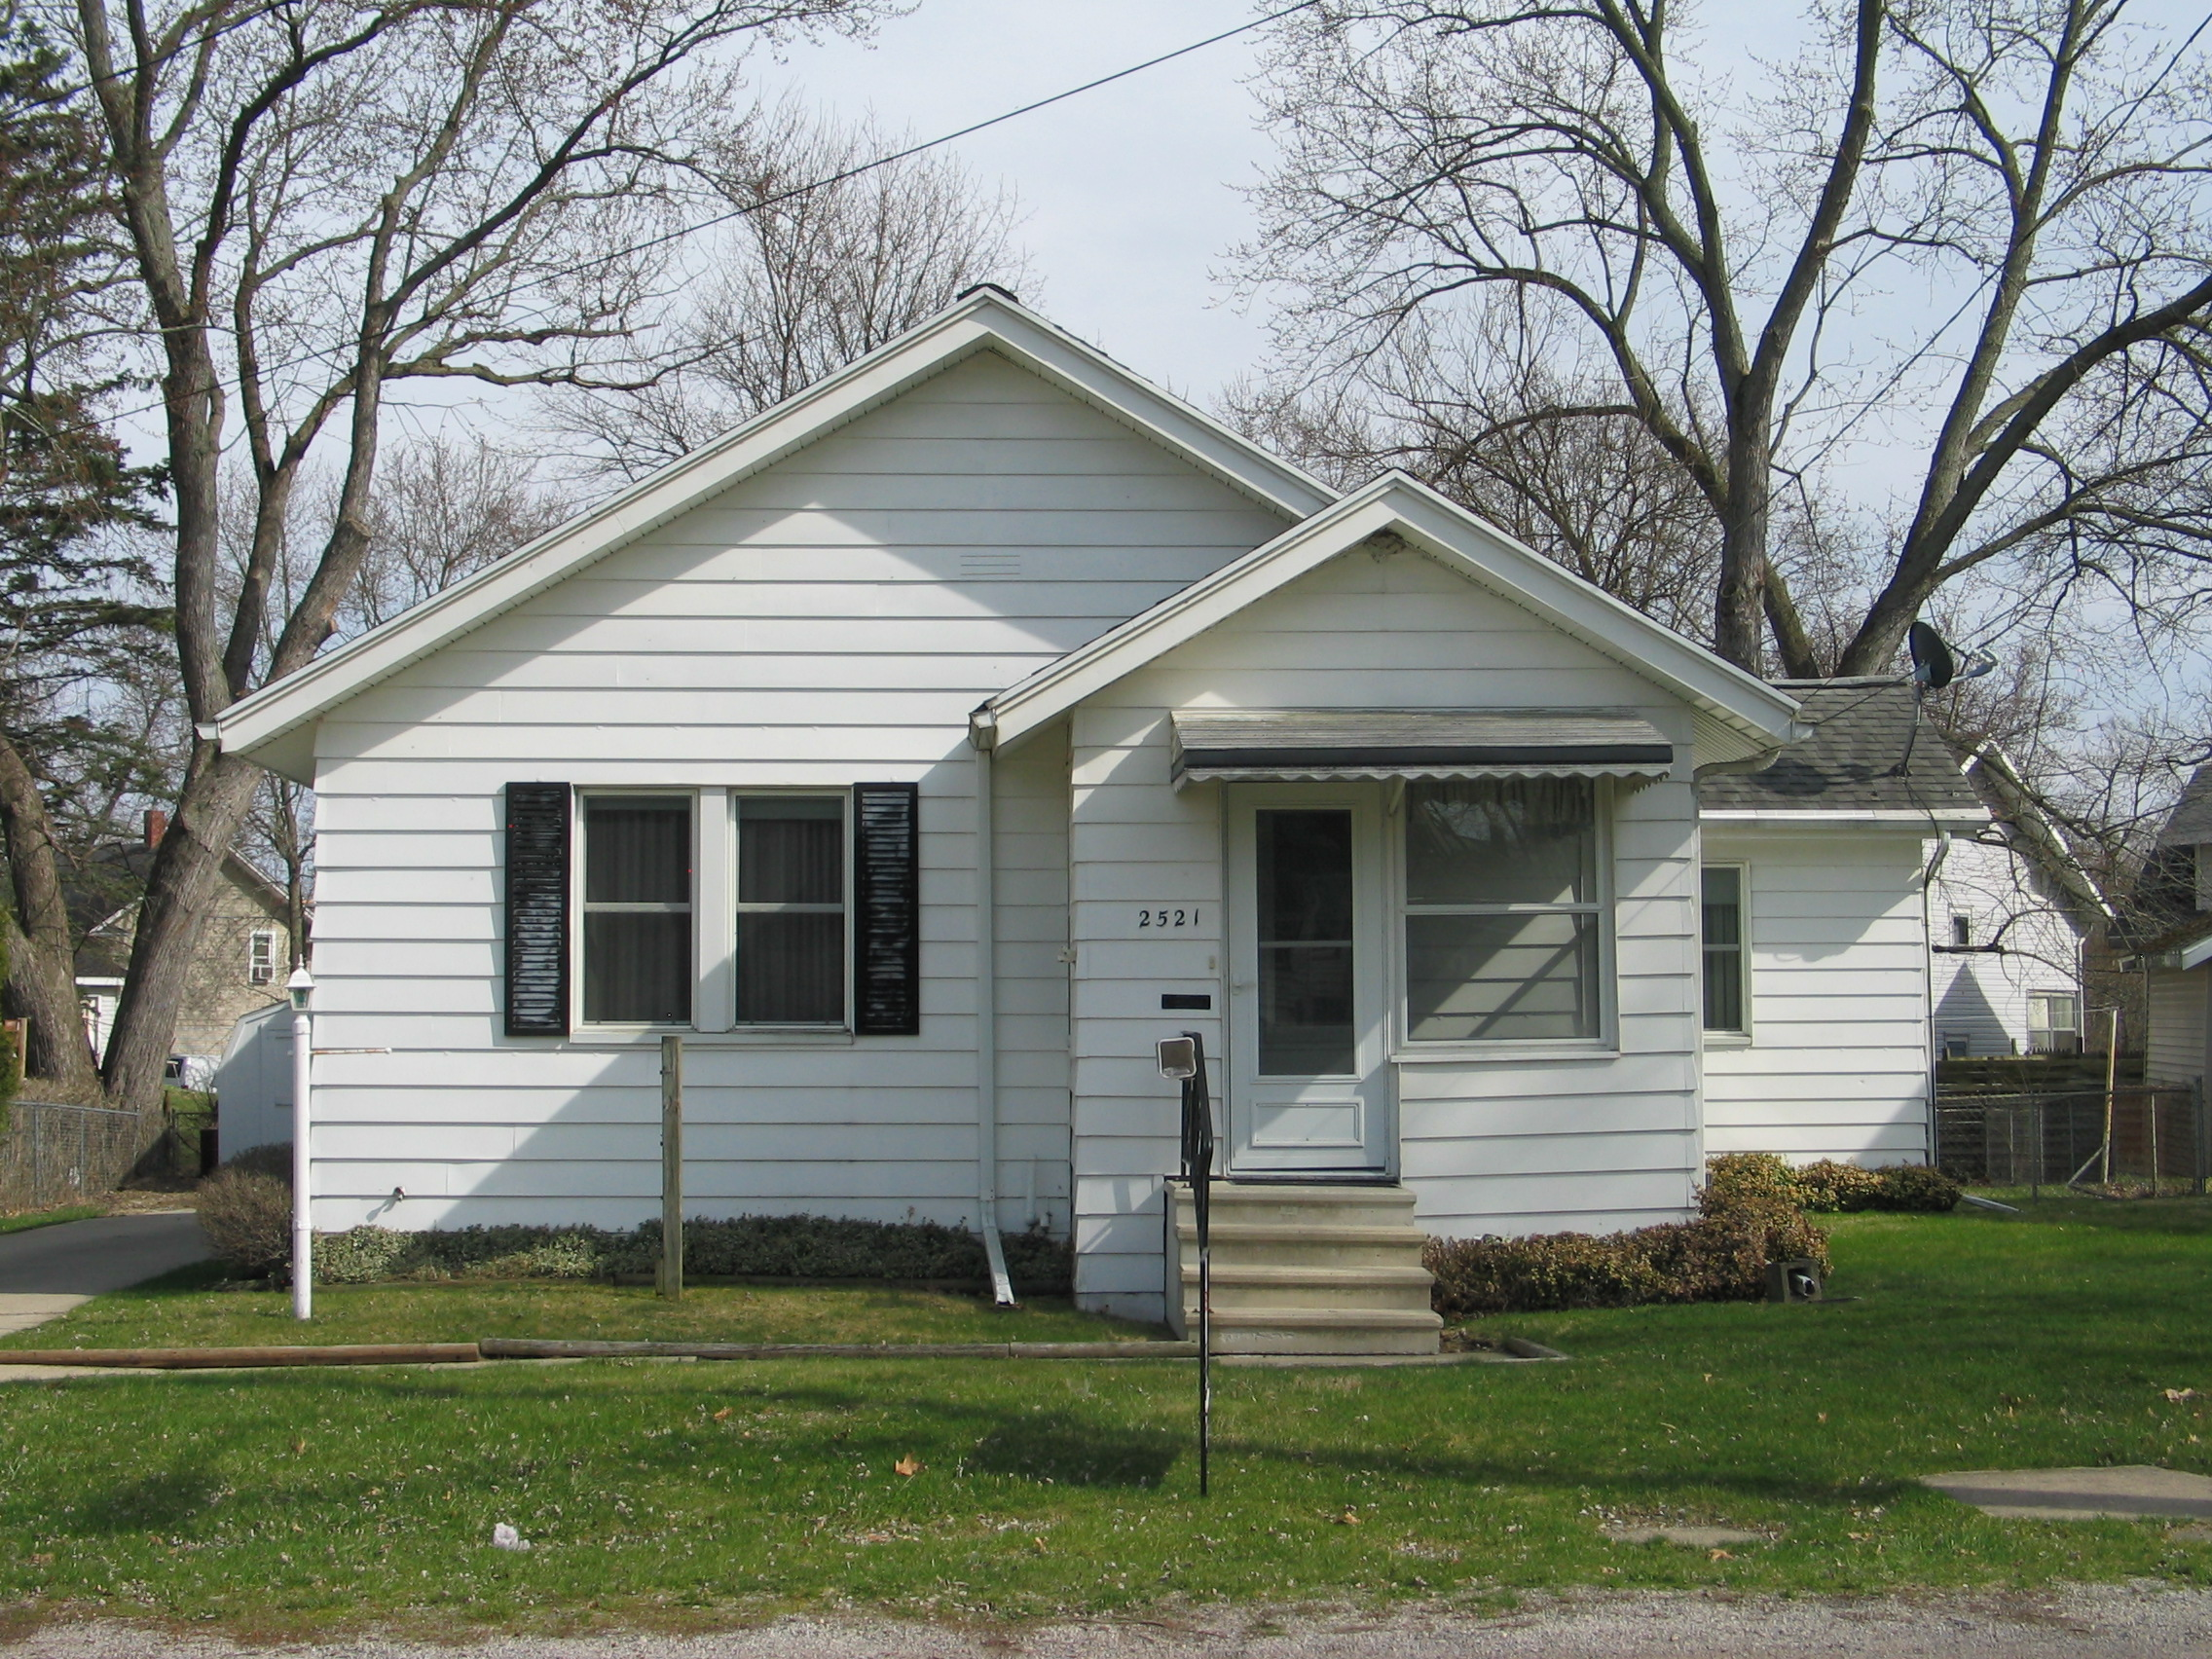 2521 Norwood St., Jackson, MI 49203